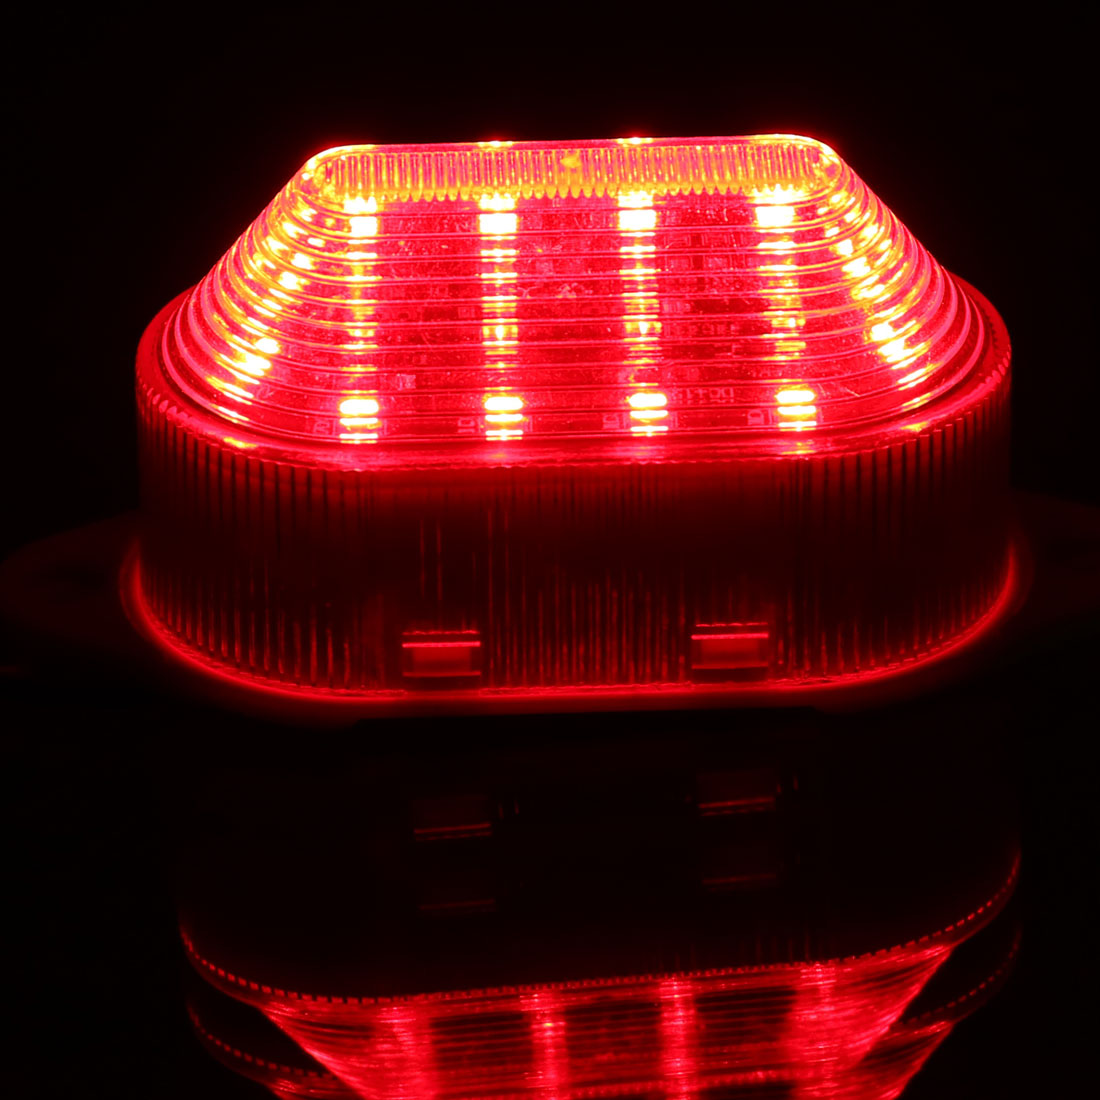 Warning Light Bulb Flashing Industrial Signal Tower Lamp DC 24V Red LTE-5051 - image 3 of 4